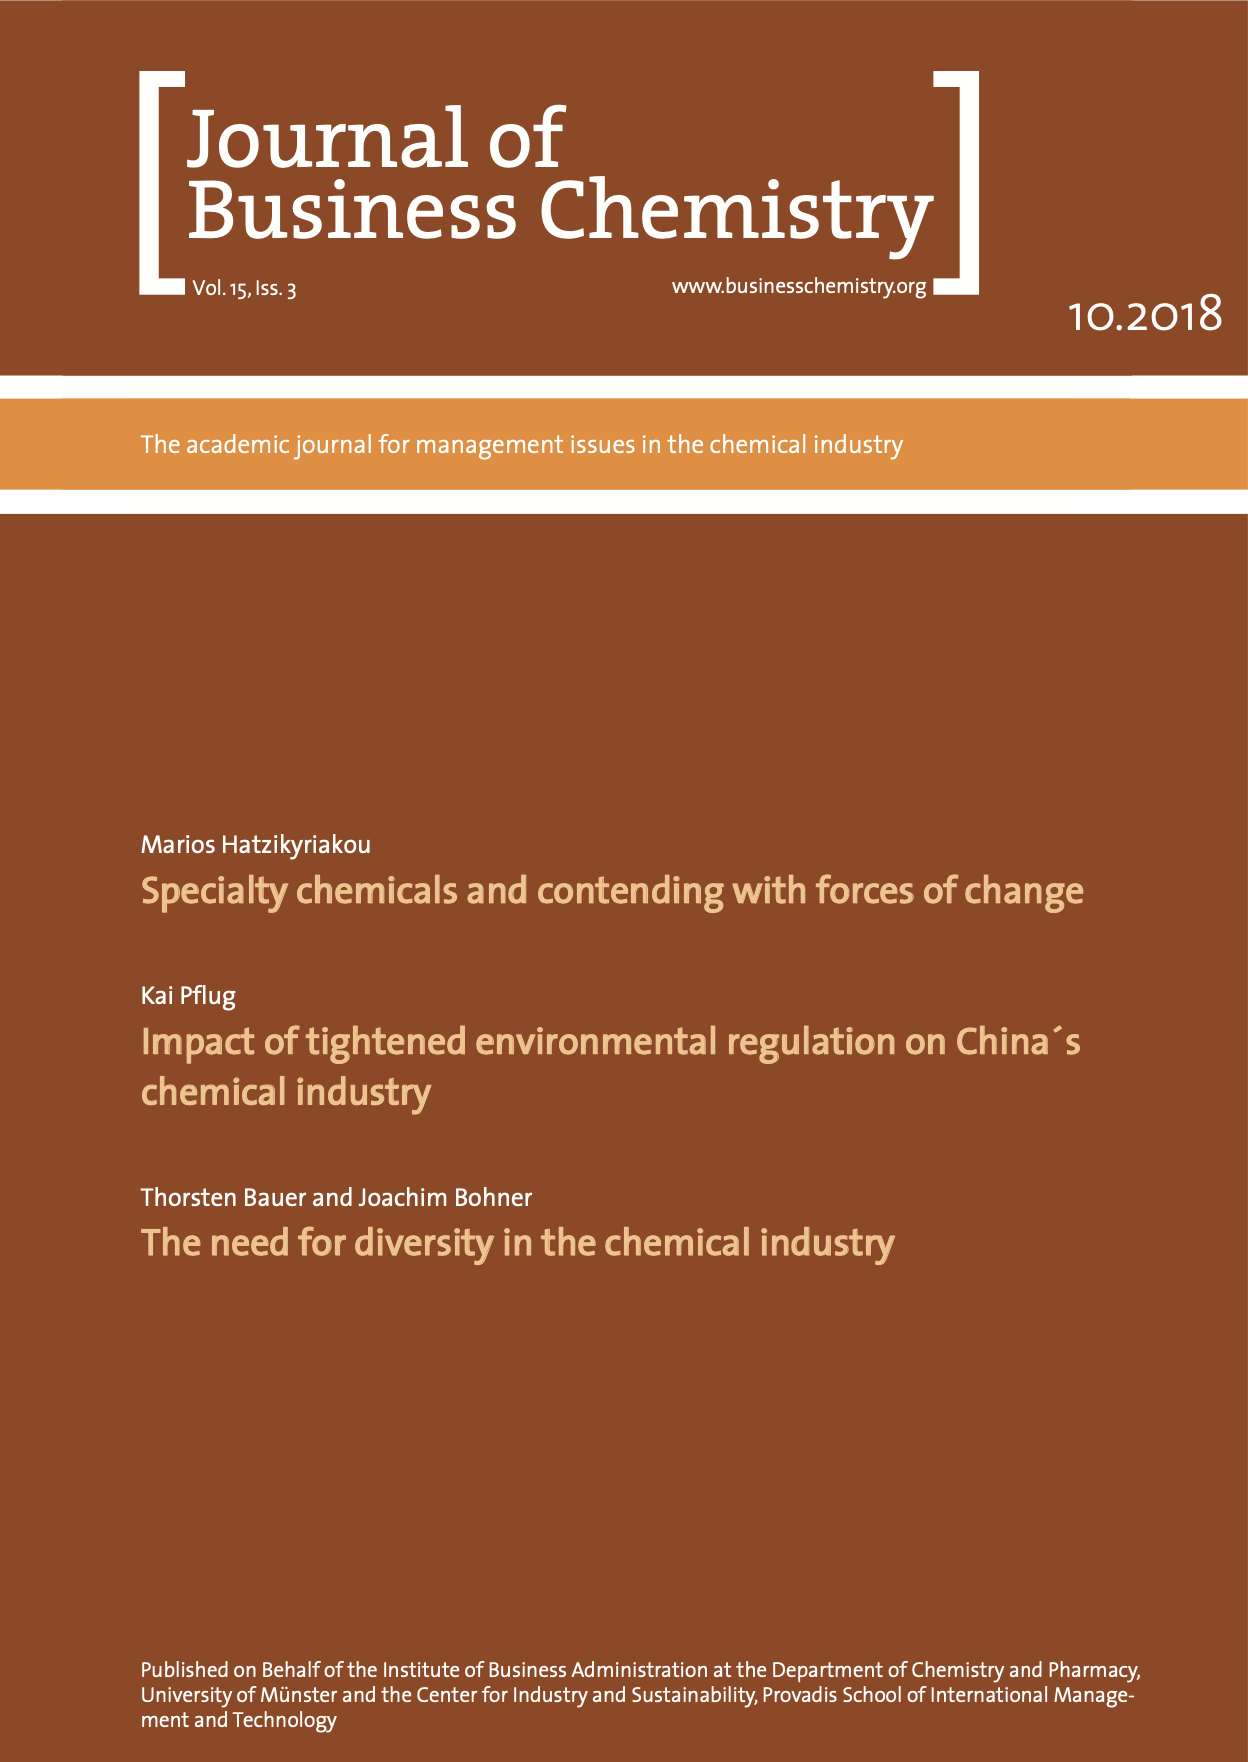 Journal of Business Chemistry October 2018